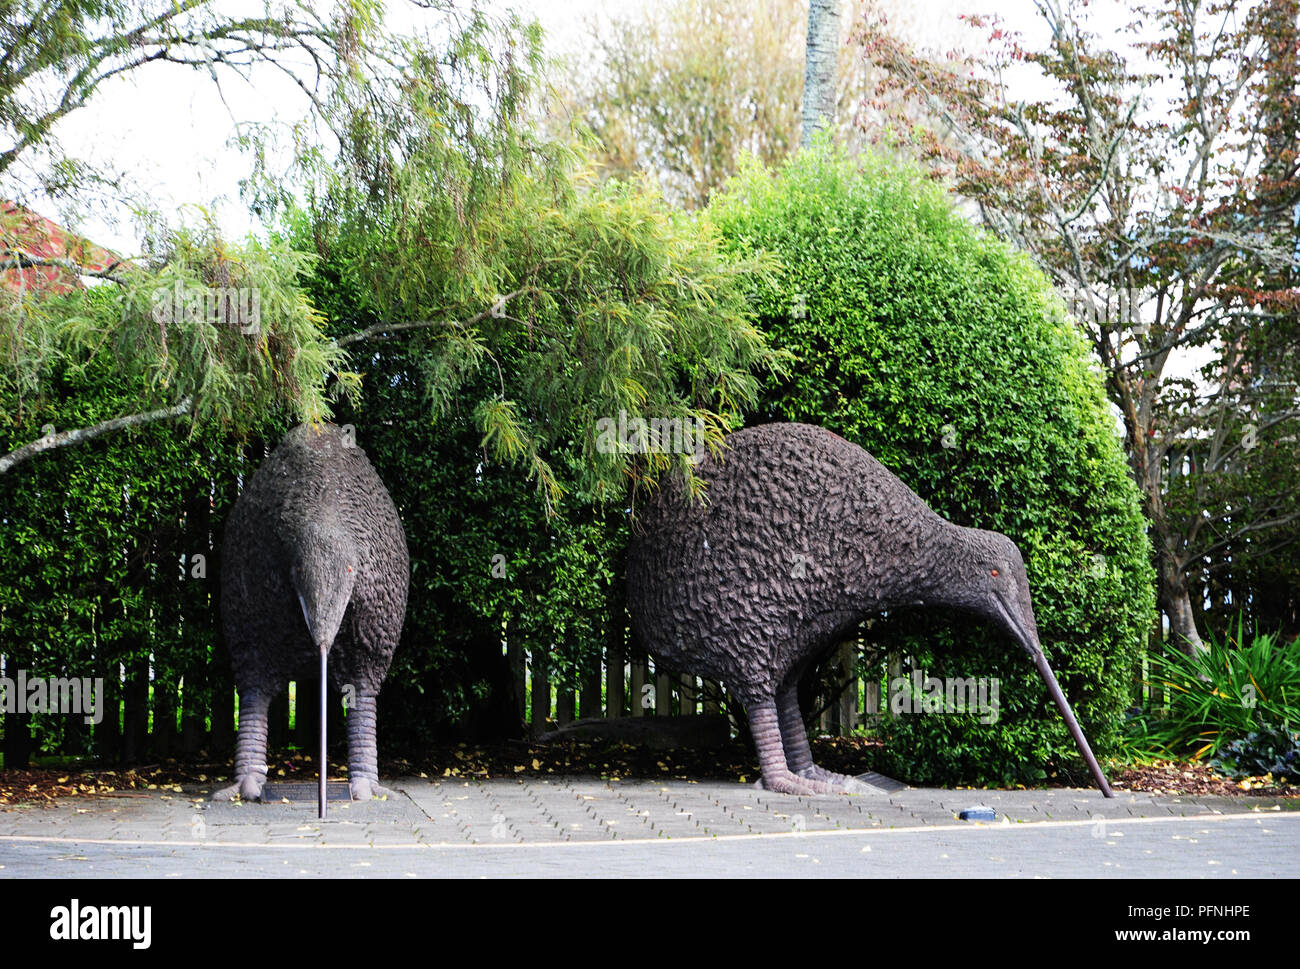 Neuseeland. 30th Apr, 2018. The kiwi is highly revered by the New Zealanders, recorded in April 2018 | usage worldwide Credit: dpa/Alamy Live News - Stock Image